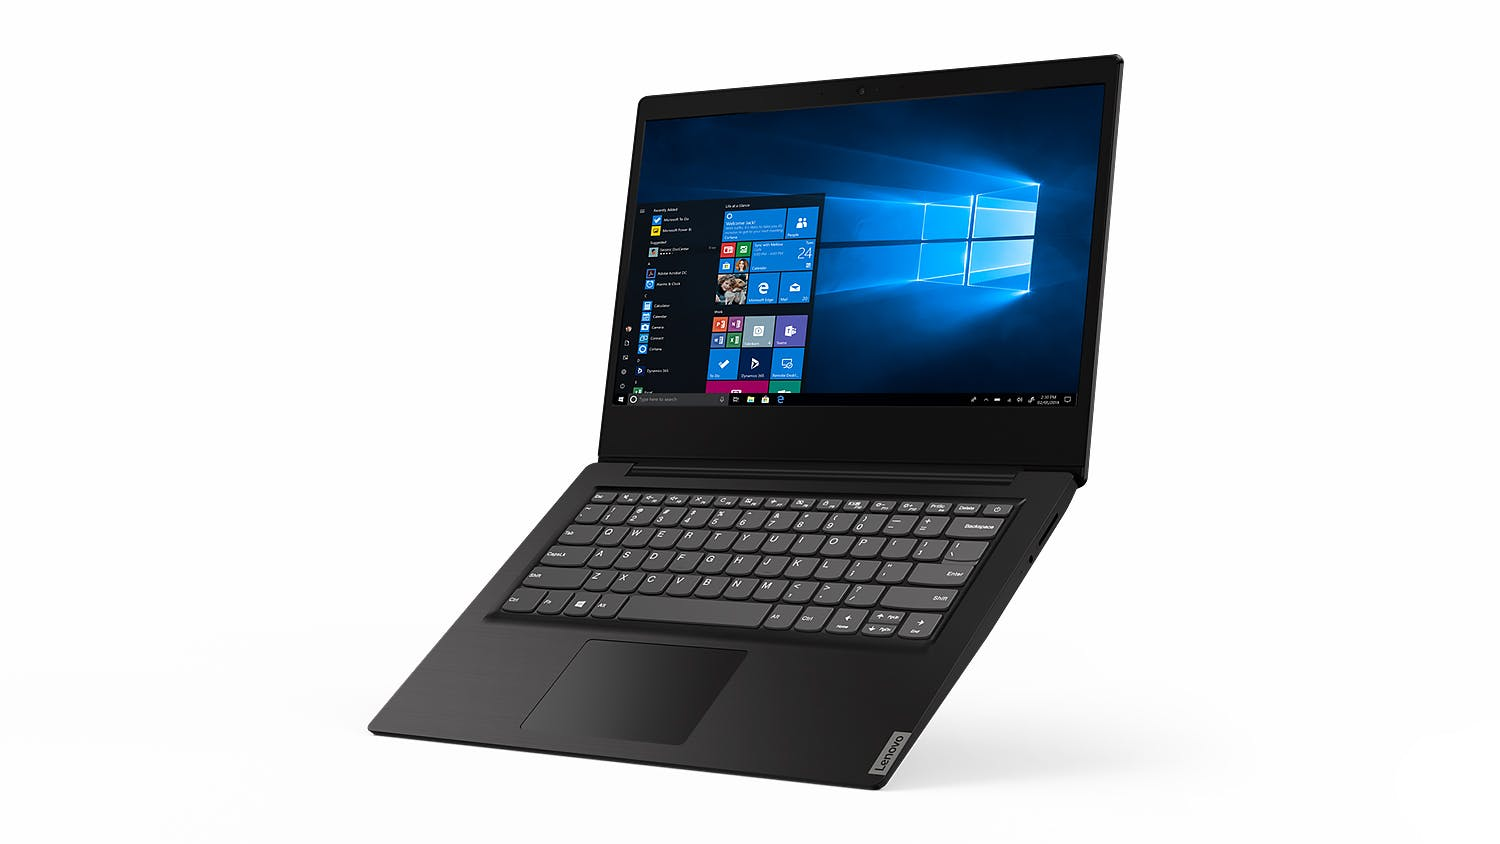 "Lenovo IdeaPad S145 15.6"" Laptop"